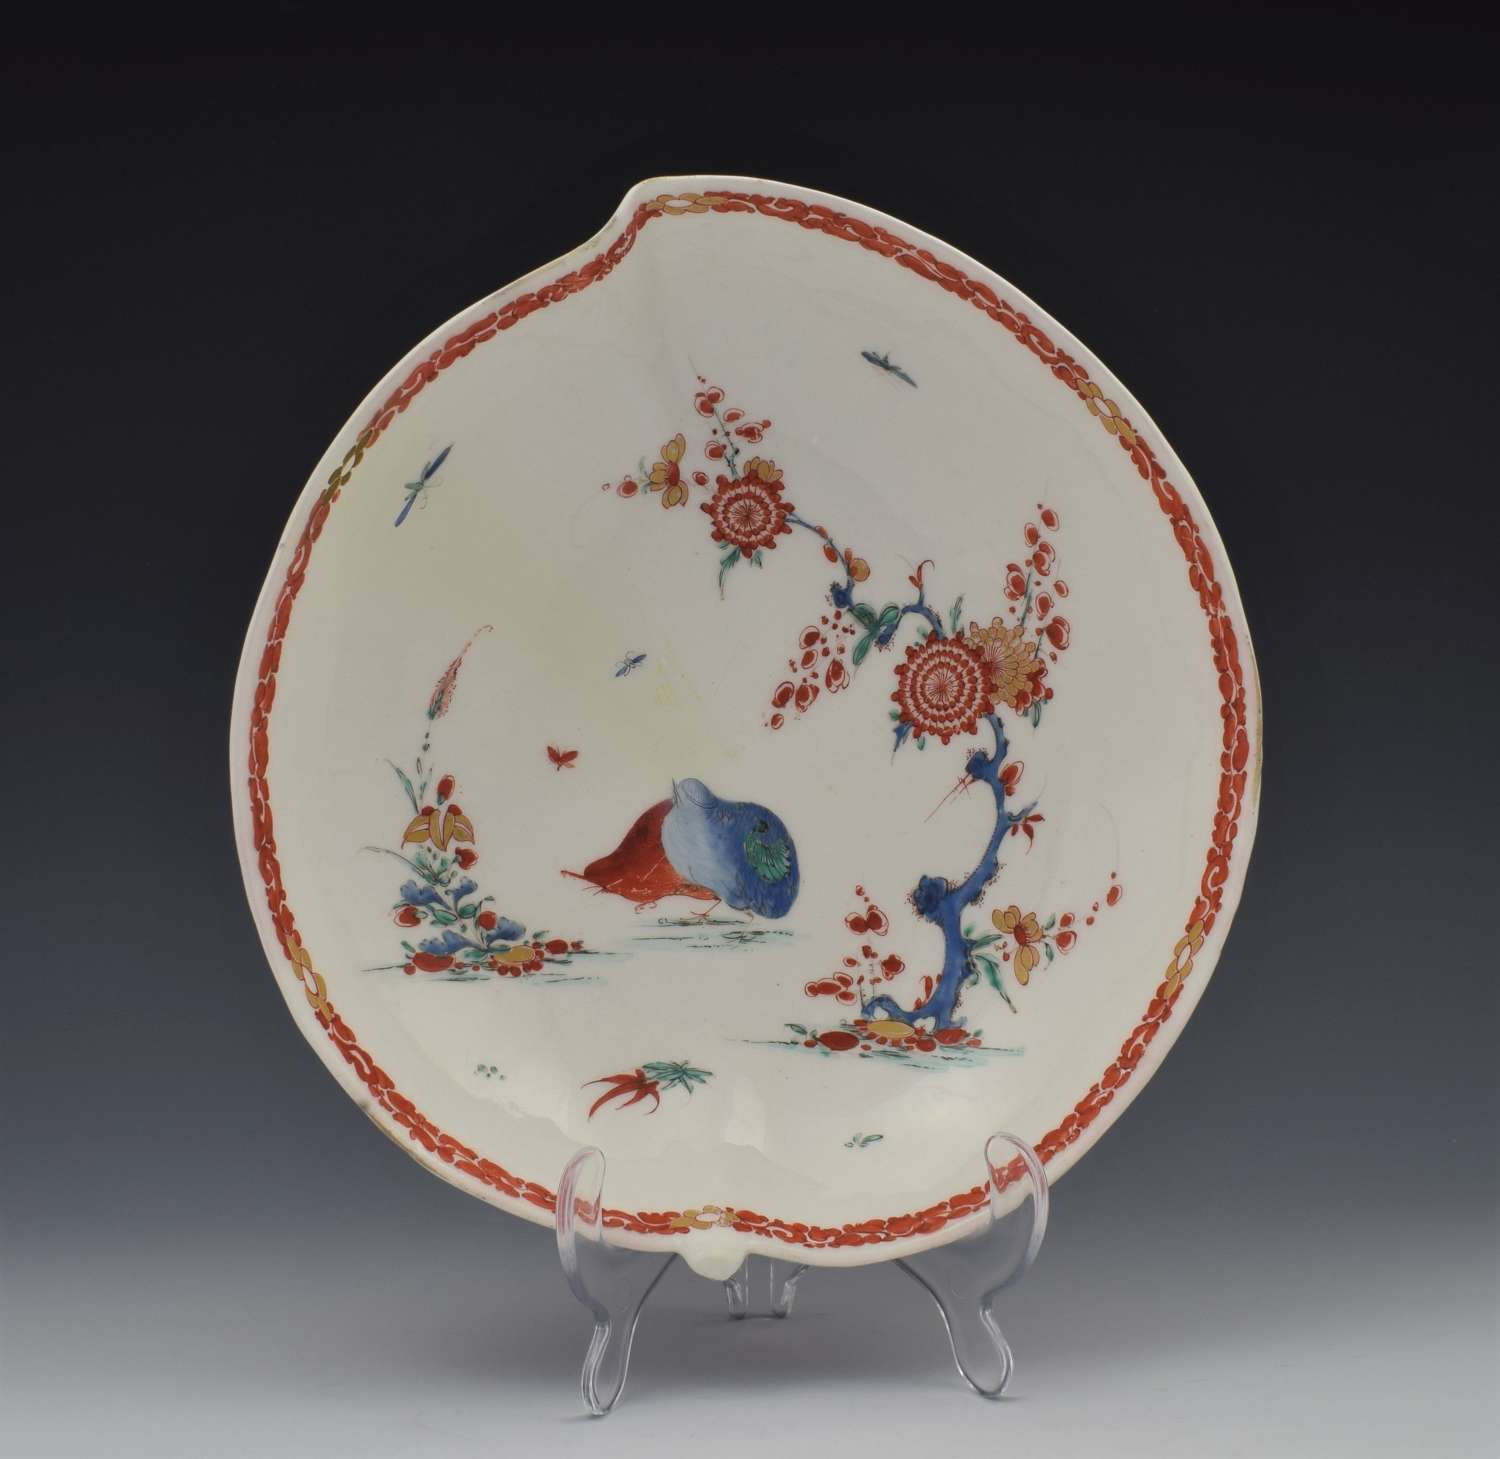 Bow Porcelain Leaf Dish Two Quail Pattern C.1755